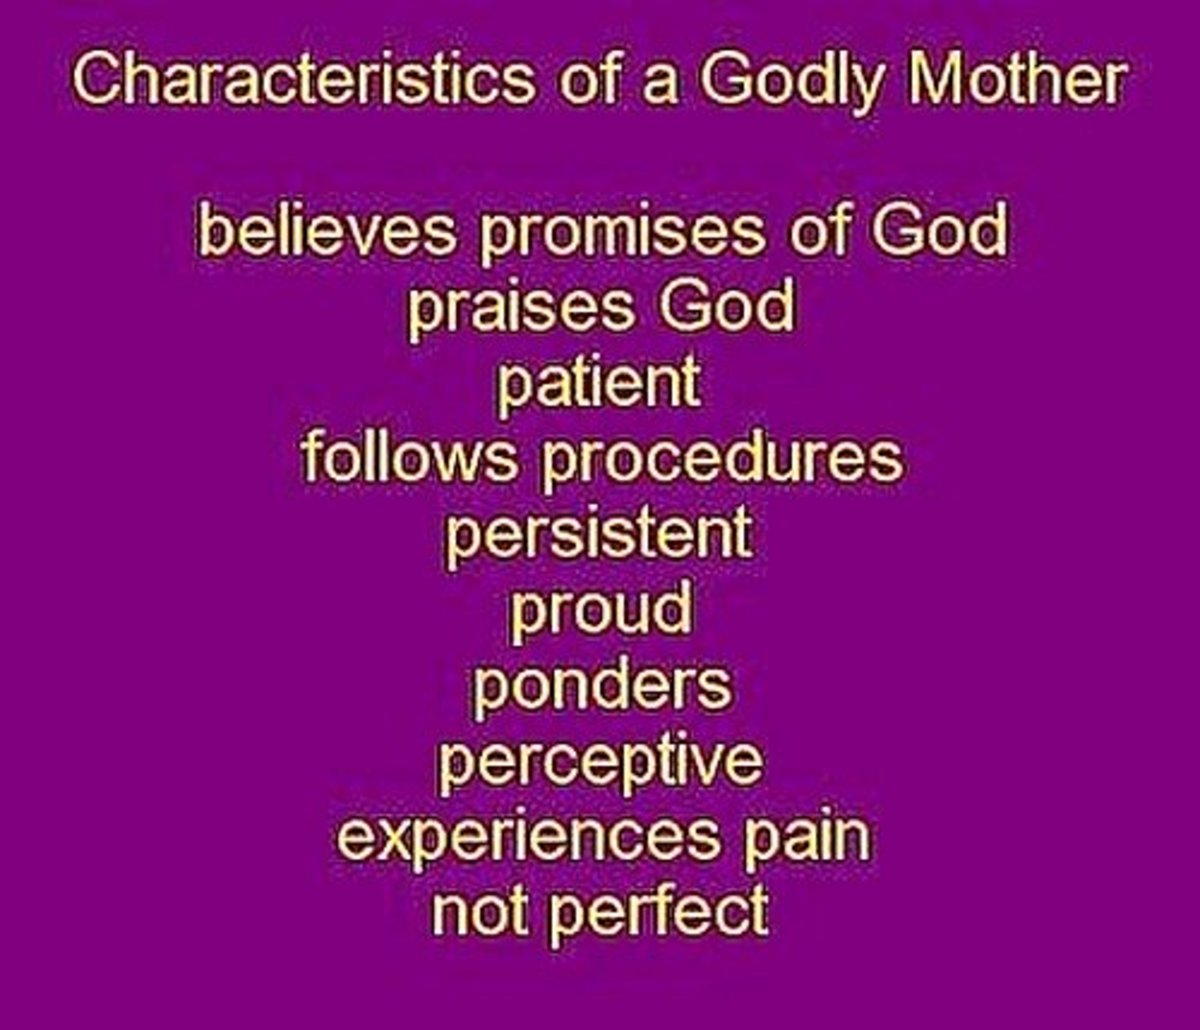 The characteristics of a good mother - essay | Research paper Sample